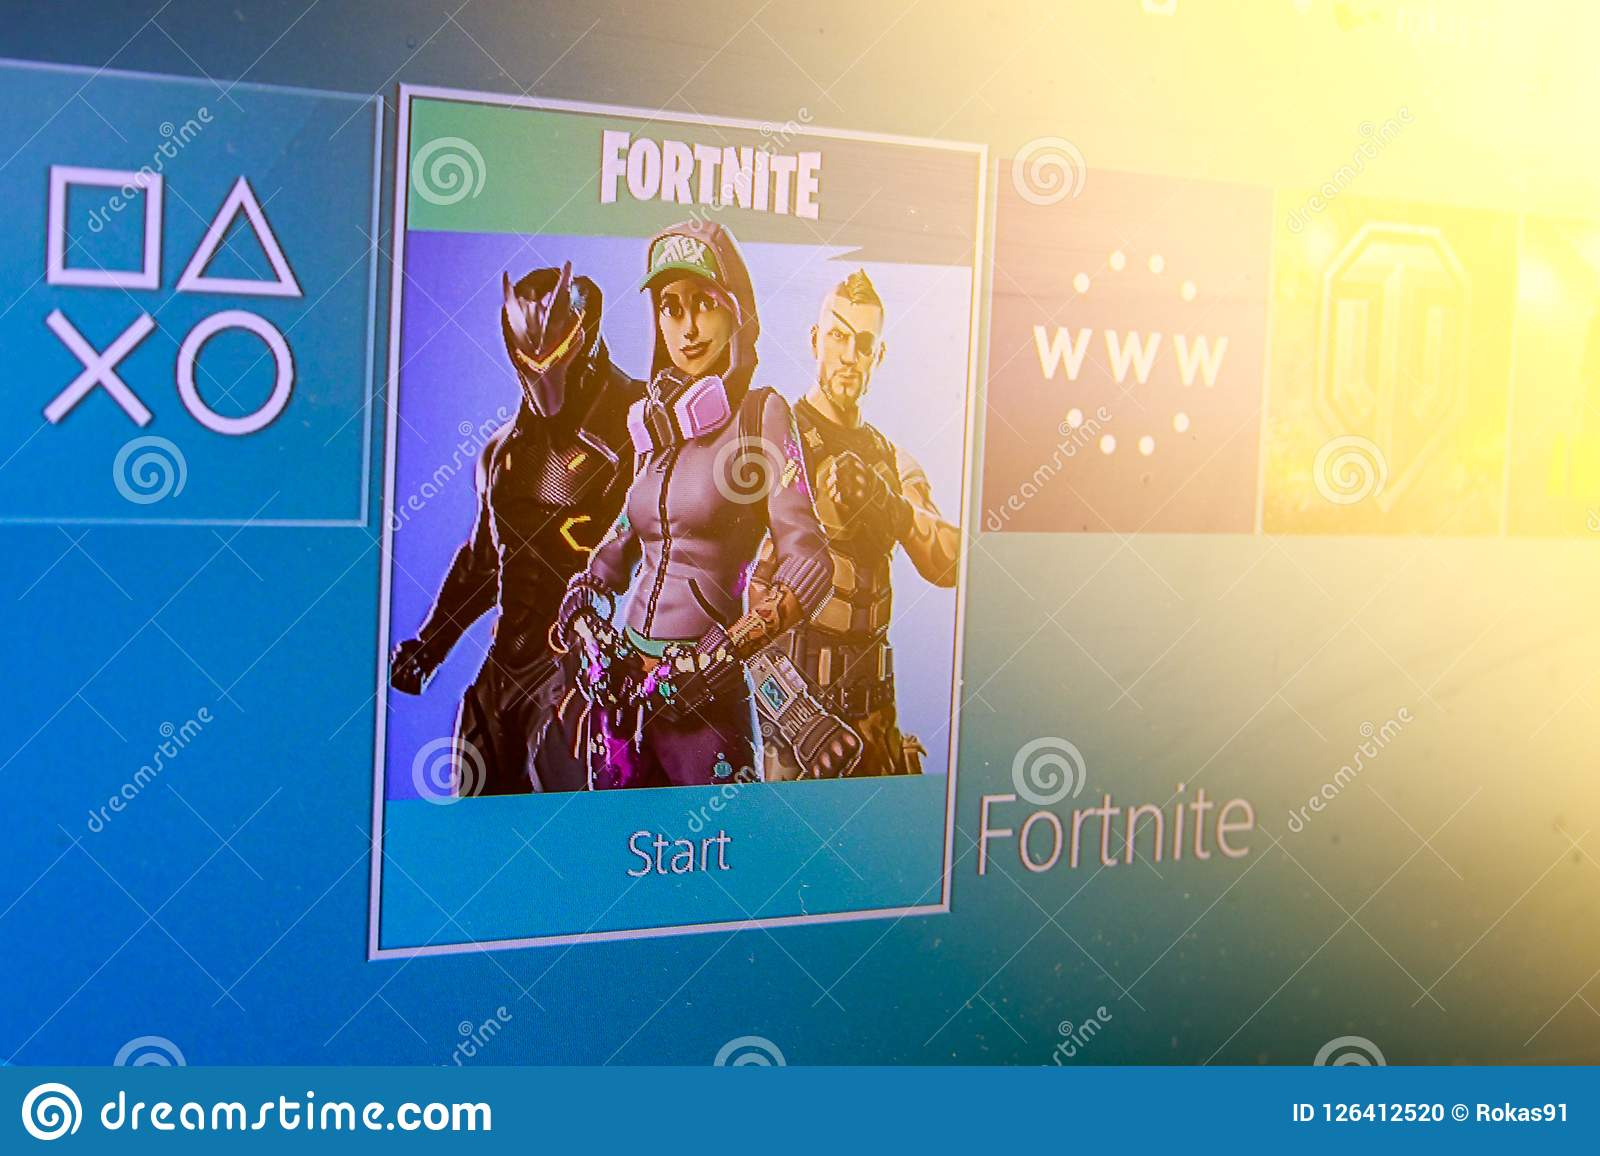 Fortnite Video Game And Playstation 4 Controller Editorial